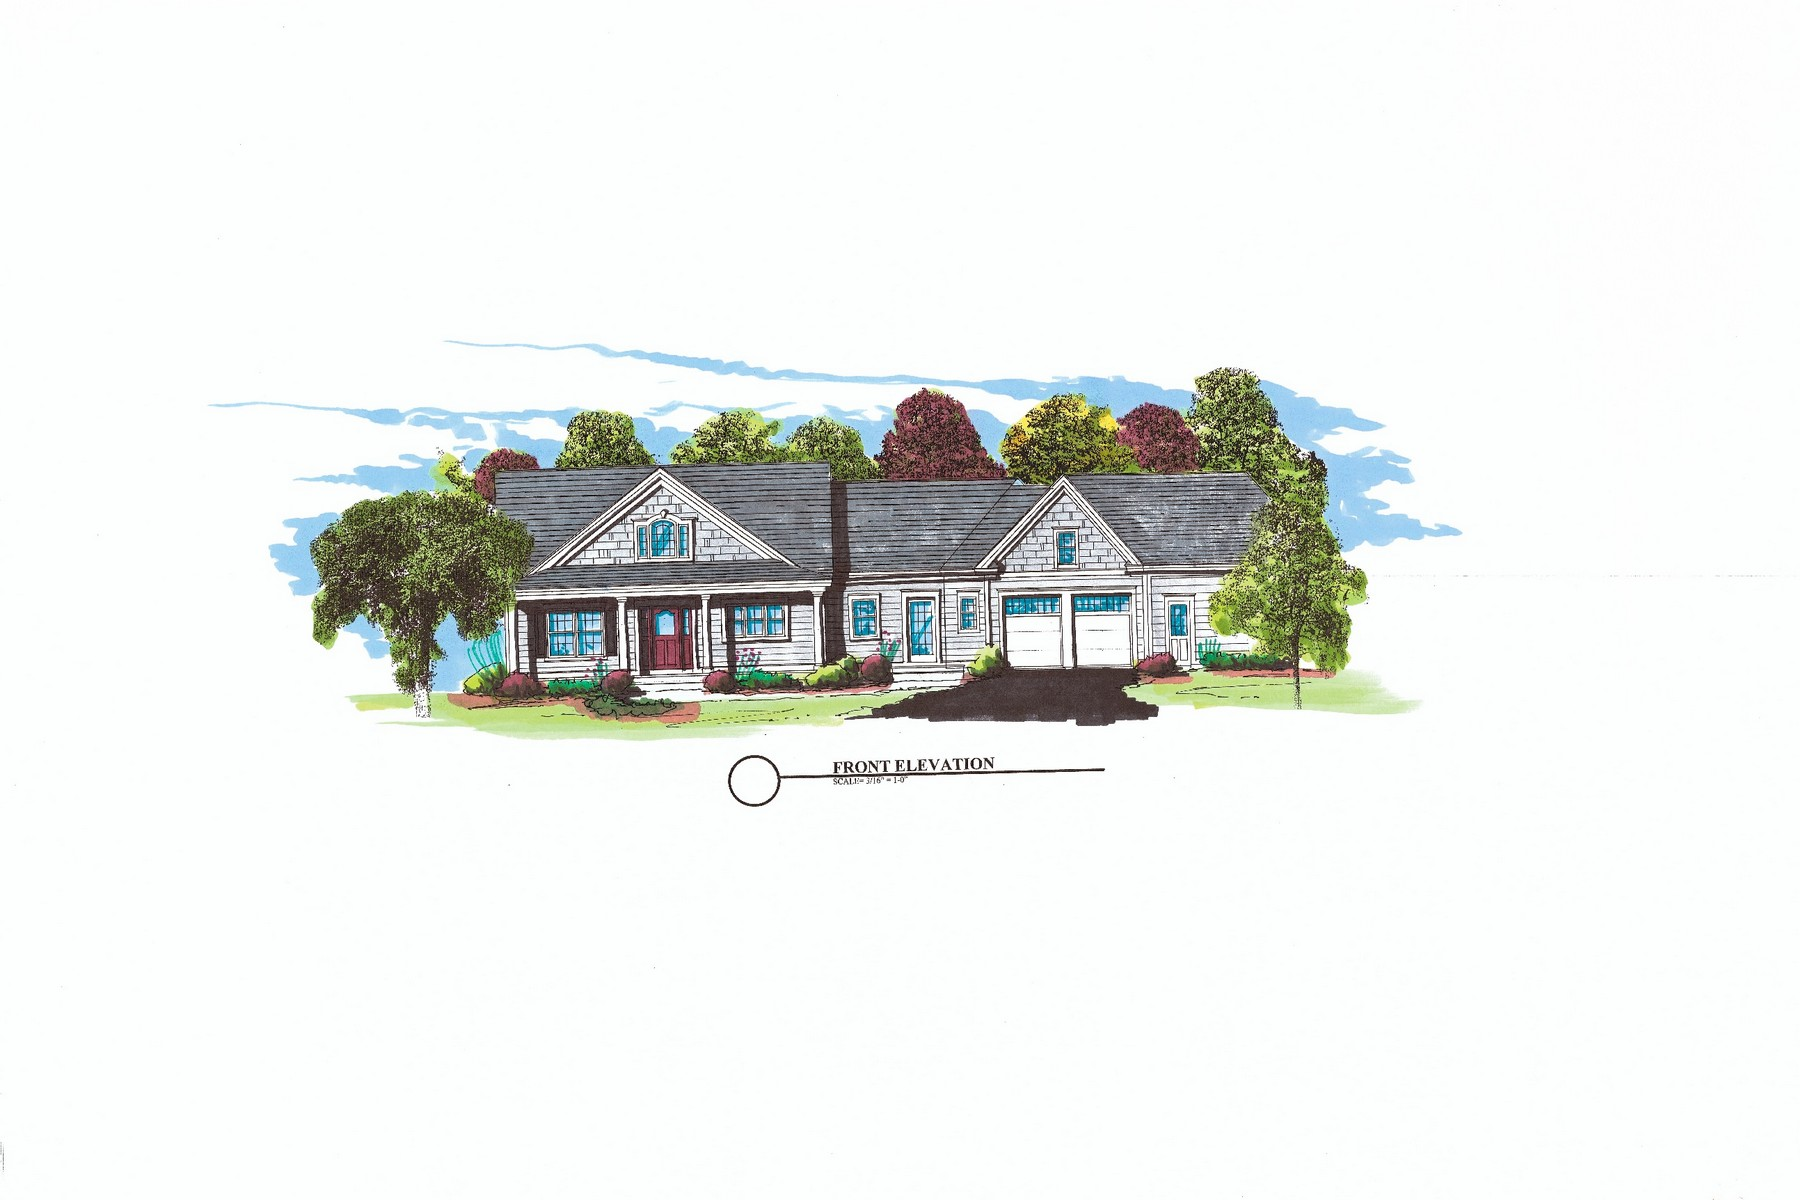 Casa Unifamiliar por un Venta en Ranch Style Home To Be Built on 2.13 Acres 16 Hill Road Old Saybrook, Connecticut, 06475 Estados Unidos